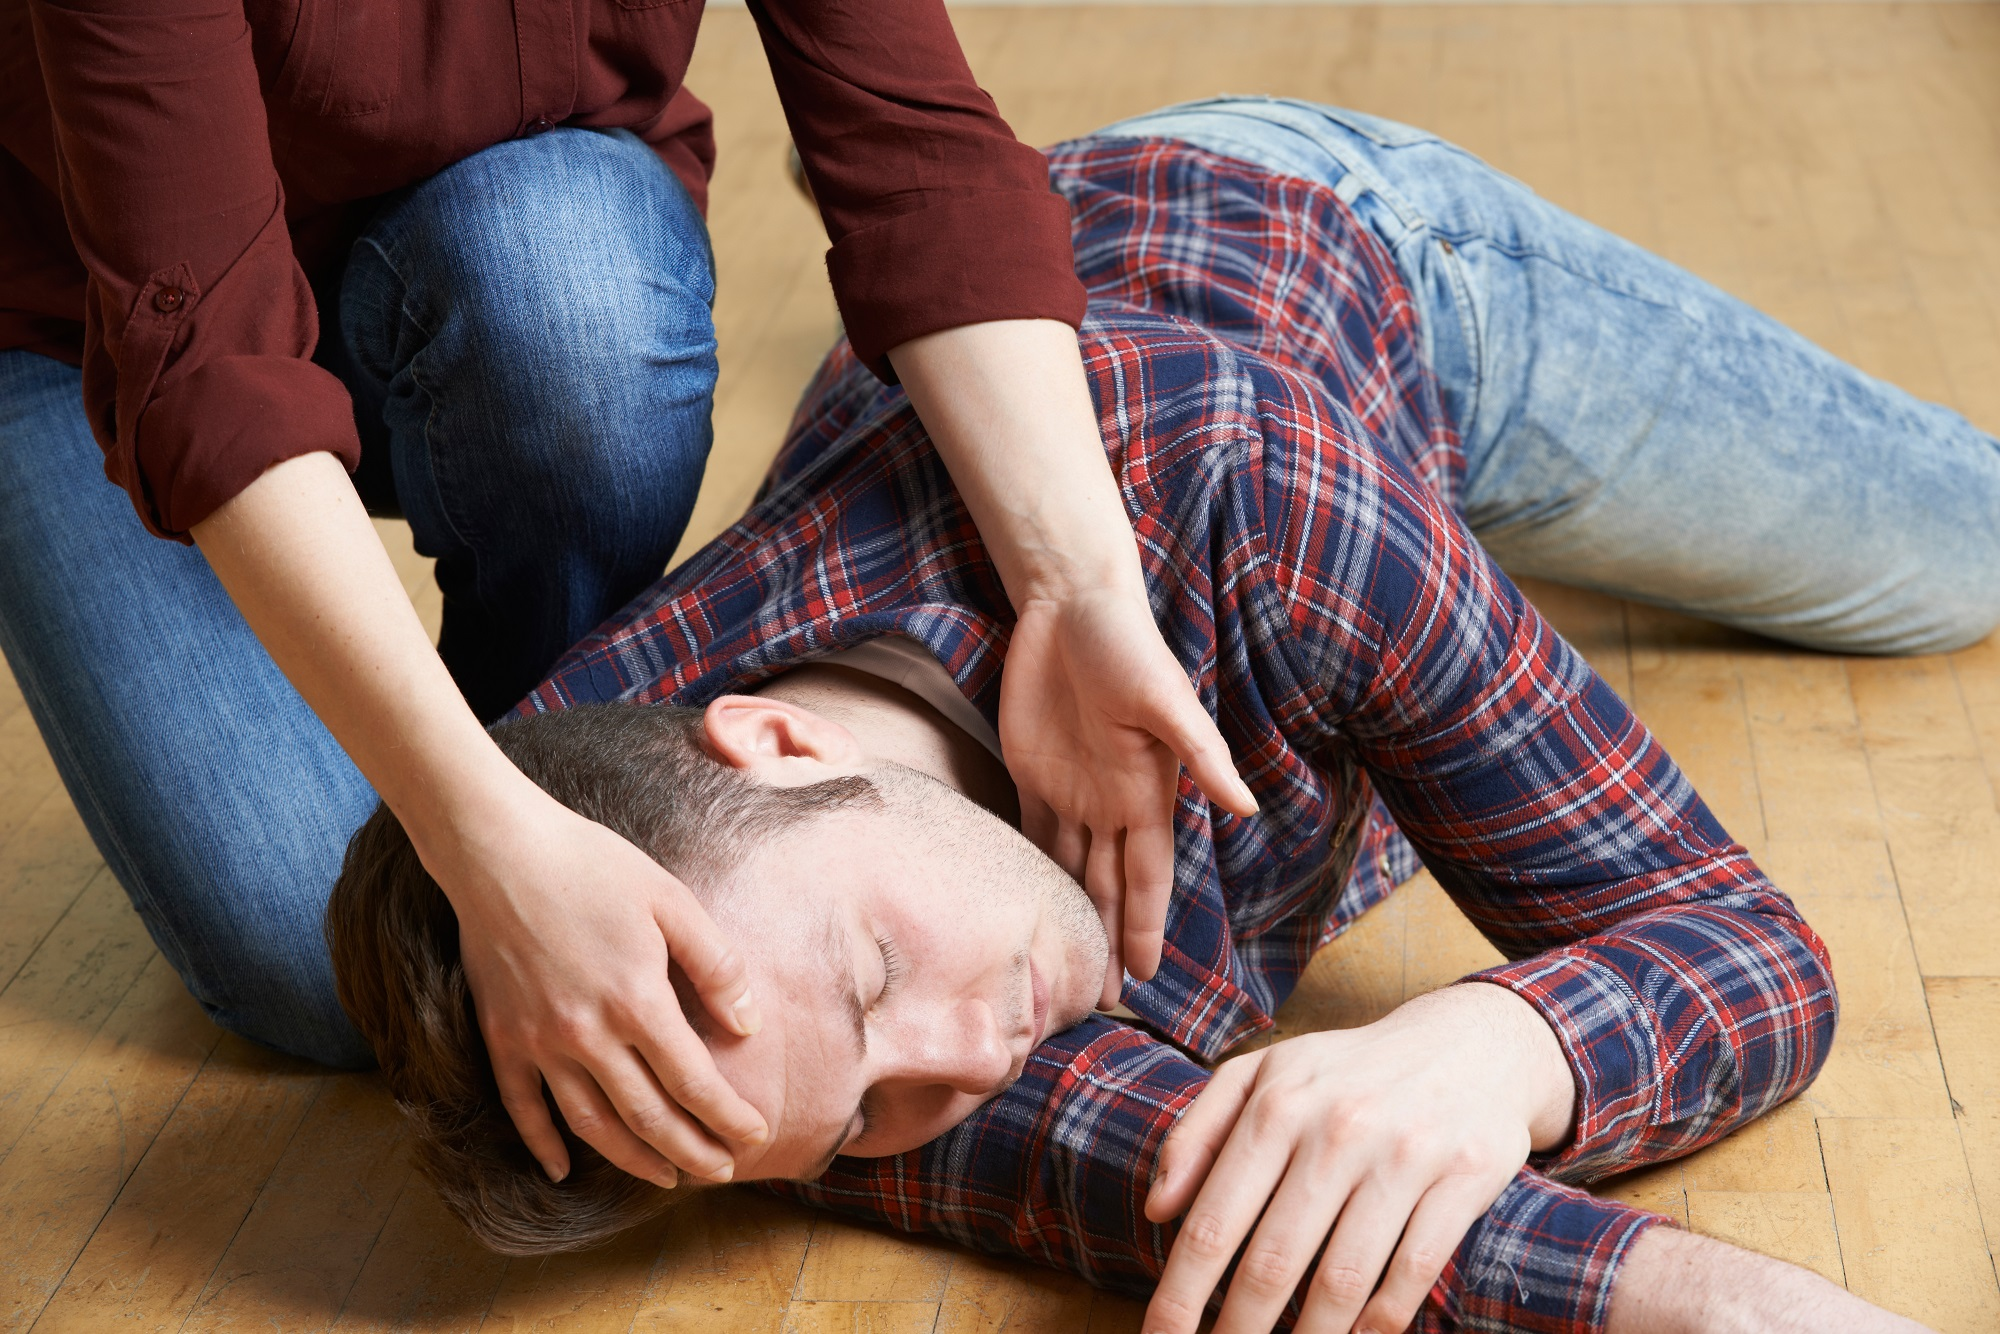 Basic Life Support in Health and Social Care